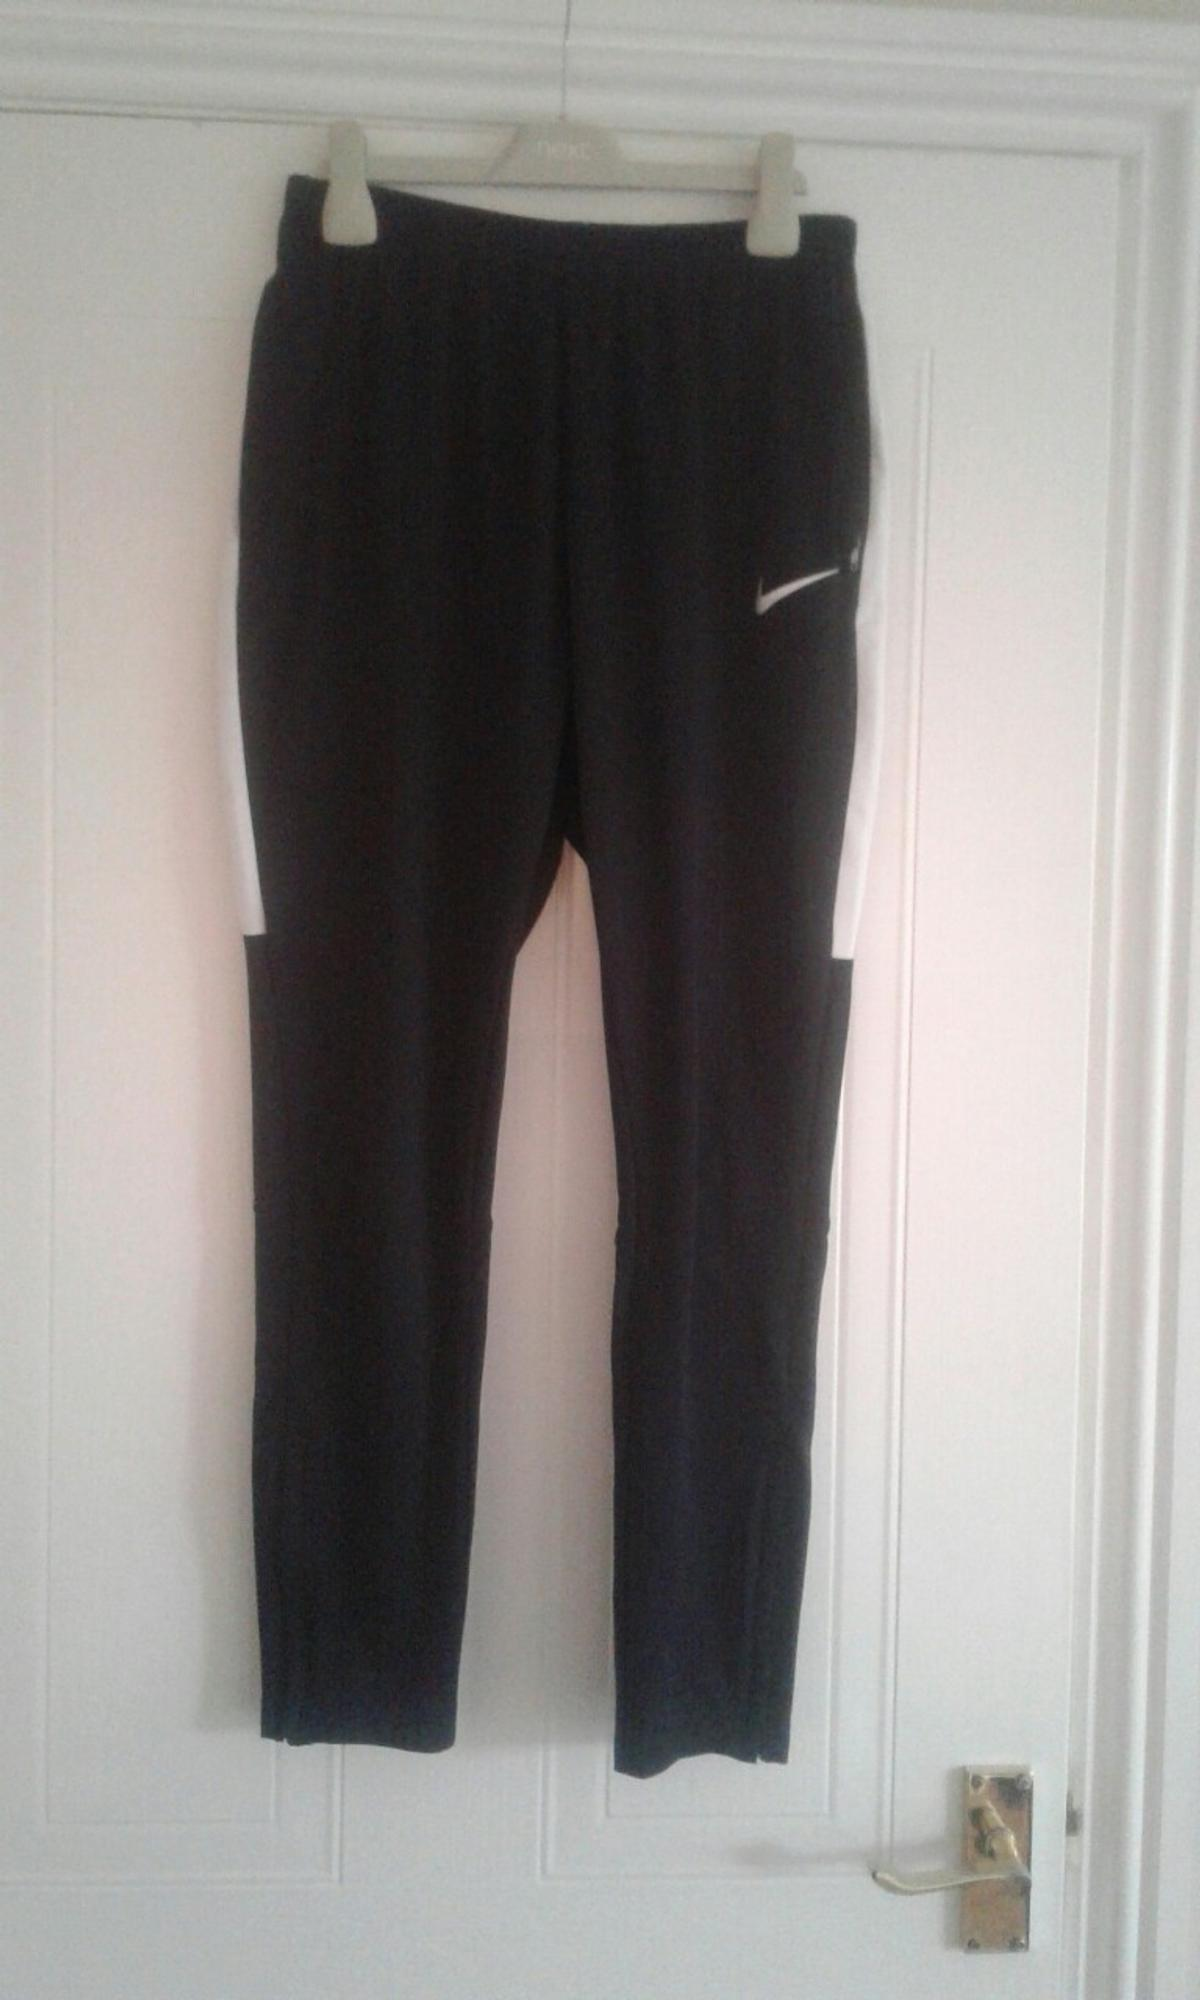 Large boys 147-158 cm, 12-13 years 100% polyester Machine washable Two side pocket with zips White mesh strips down both sides of joggers Good condition apart from very slight mark down side of jogger